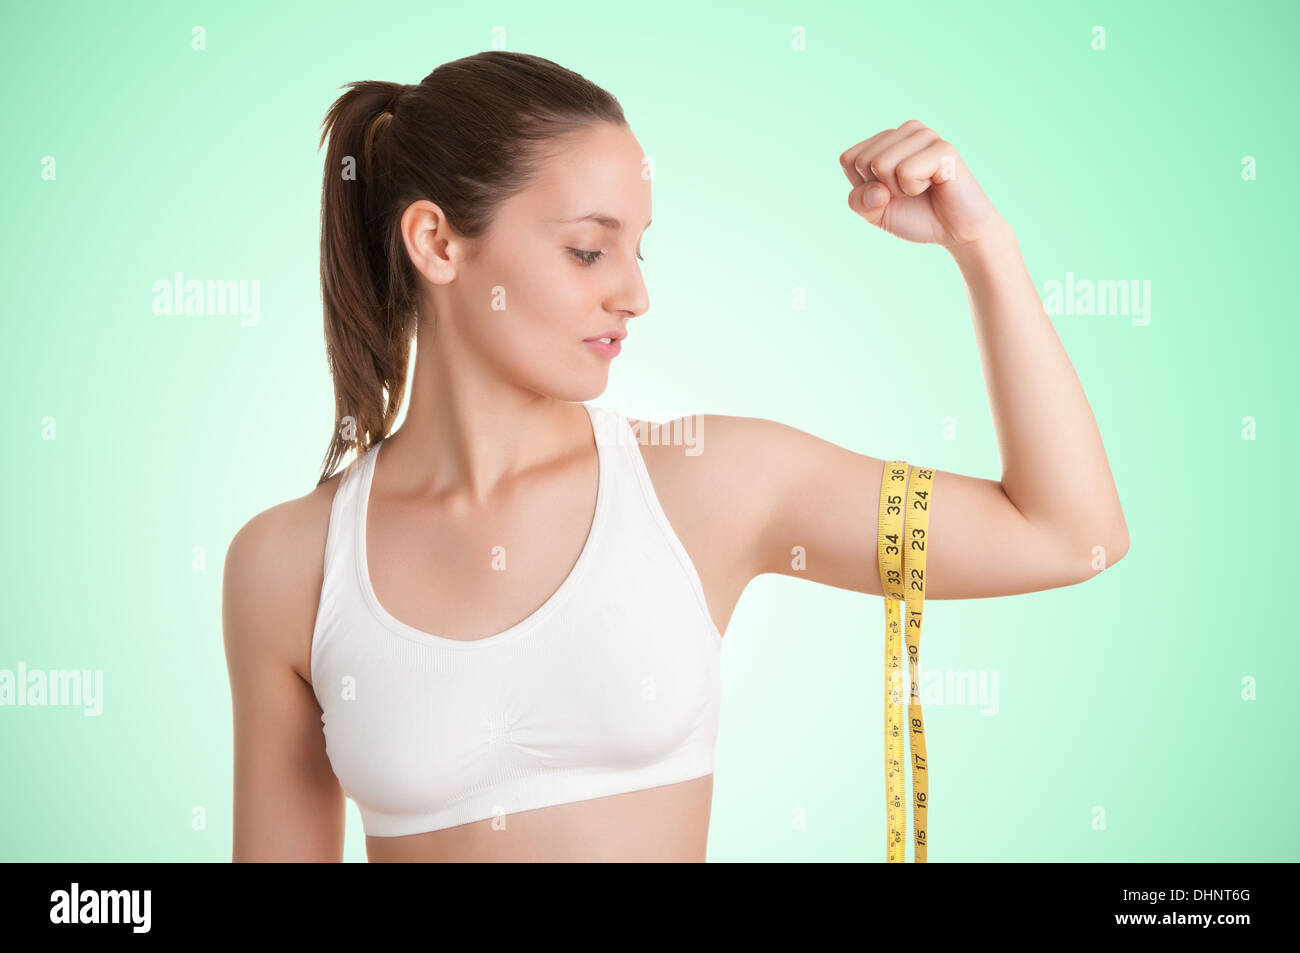 Powerful woman measuring her biceps with a yellow measuring tape in a green background - Stock Image